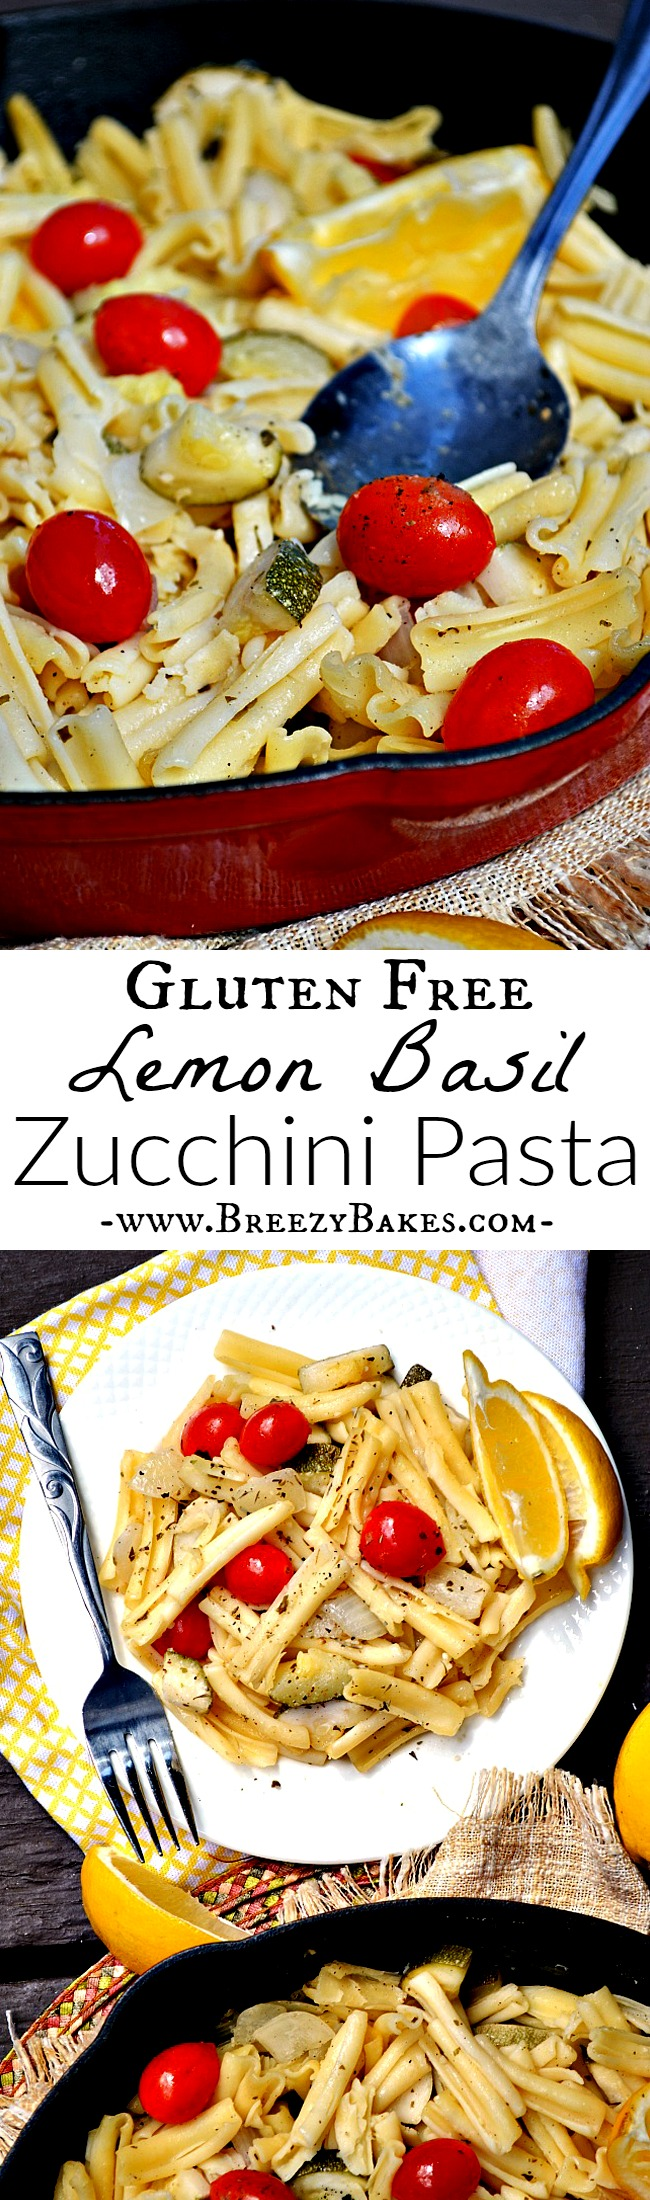 It's two thumbs up for this simply effortless 30 minute vegetarianGluten Free Lemon Basil Zucchini Pasta dinner! It's light and flavorful with all the freshness of spring.